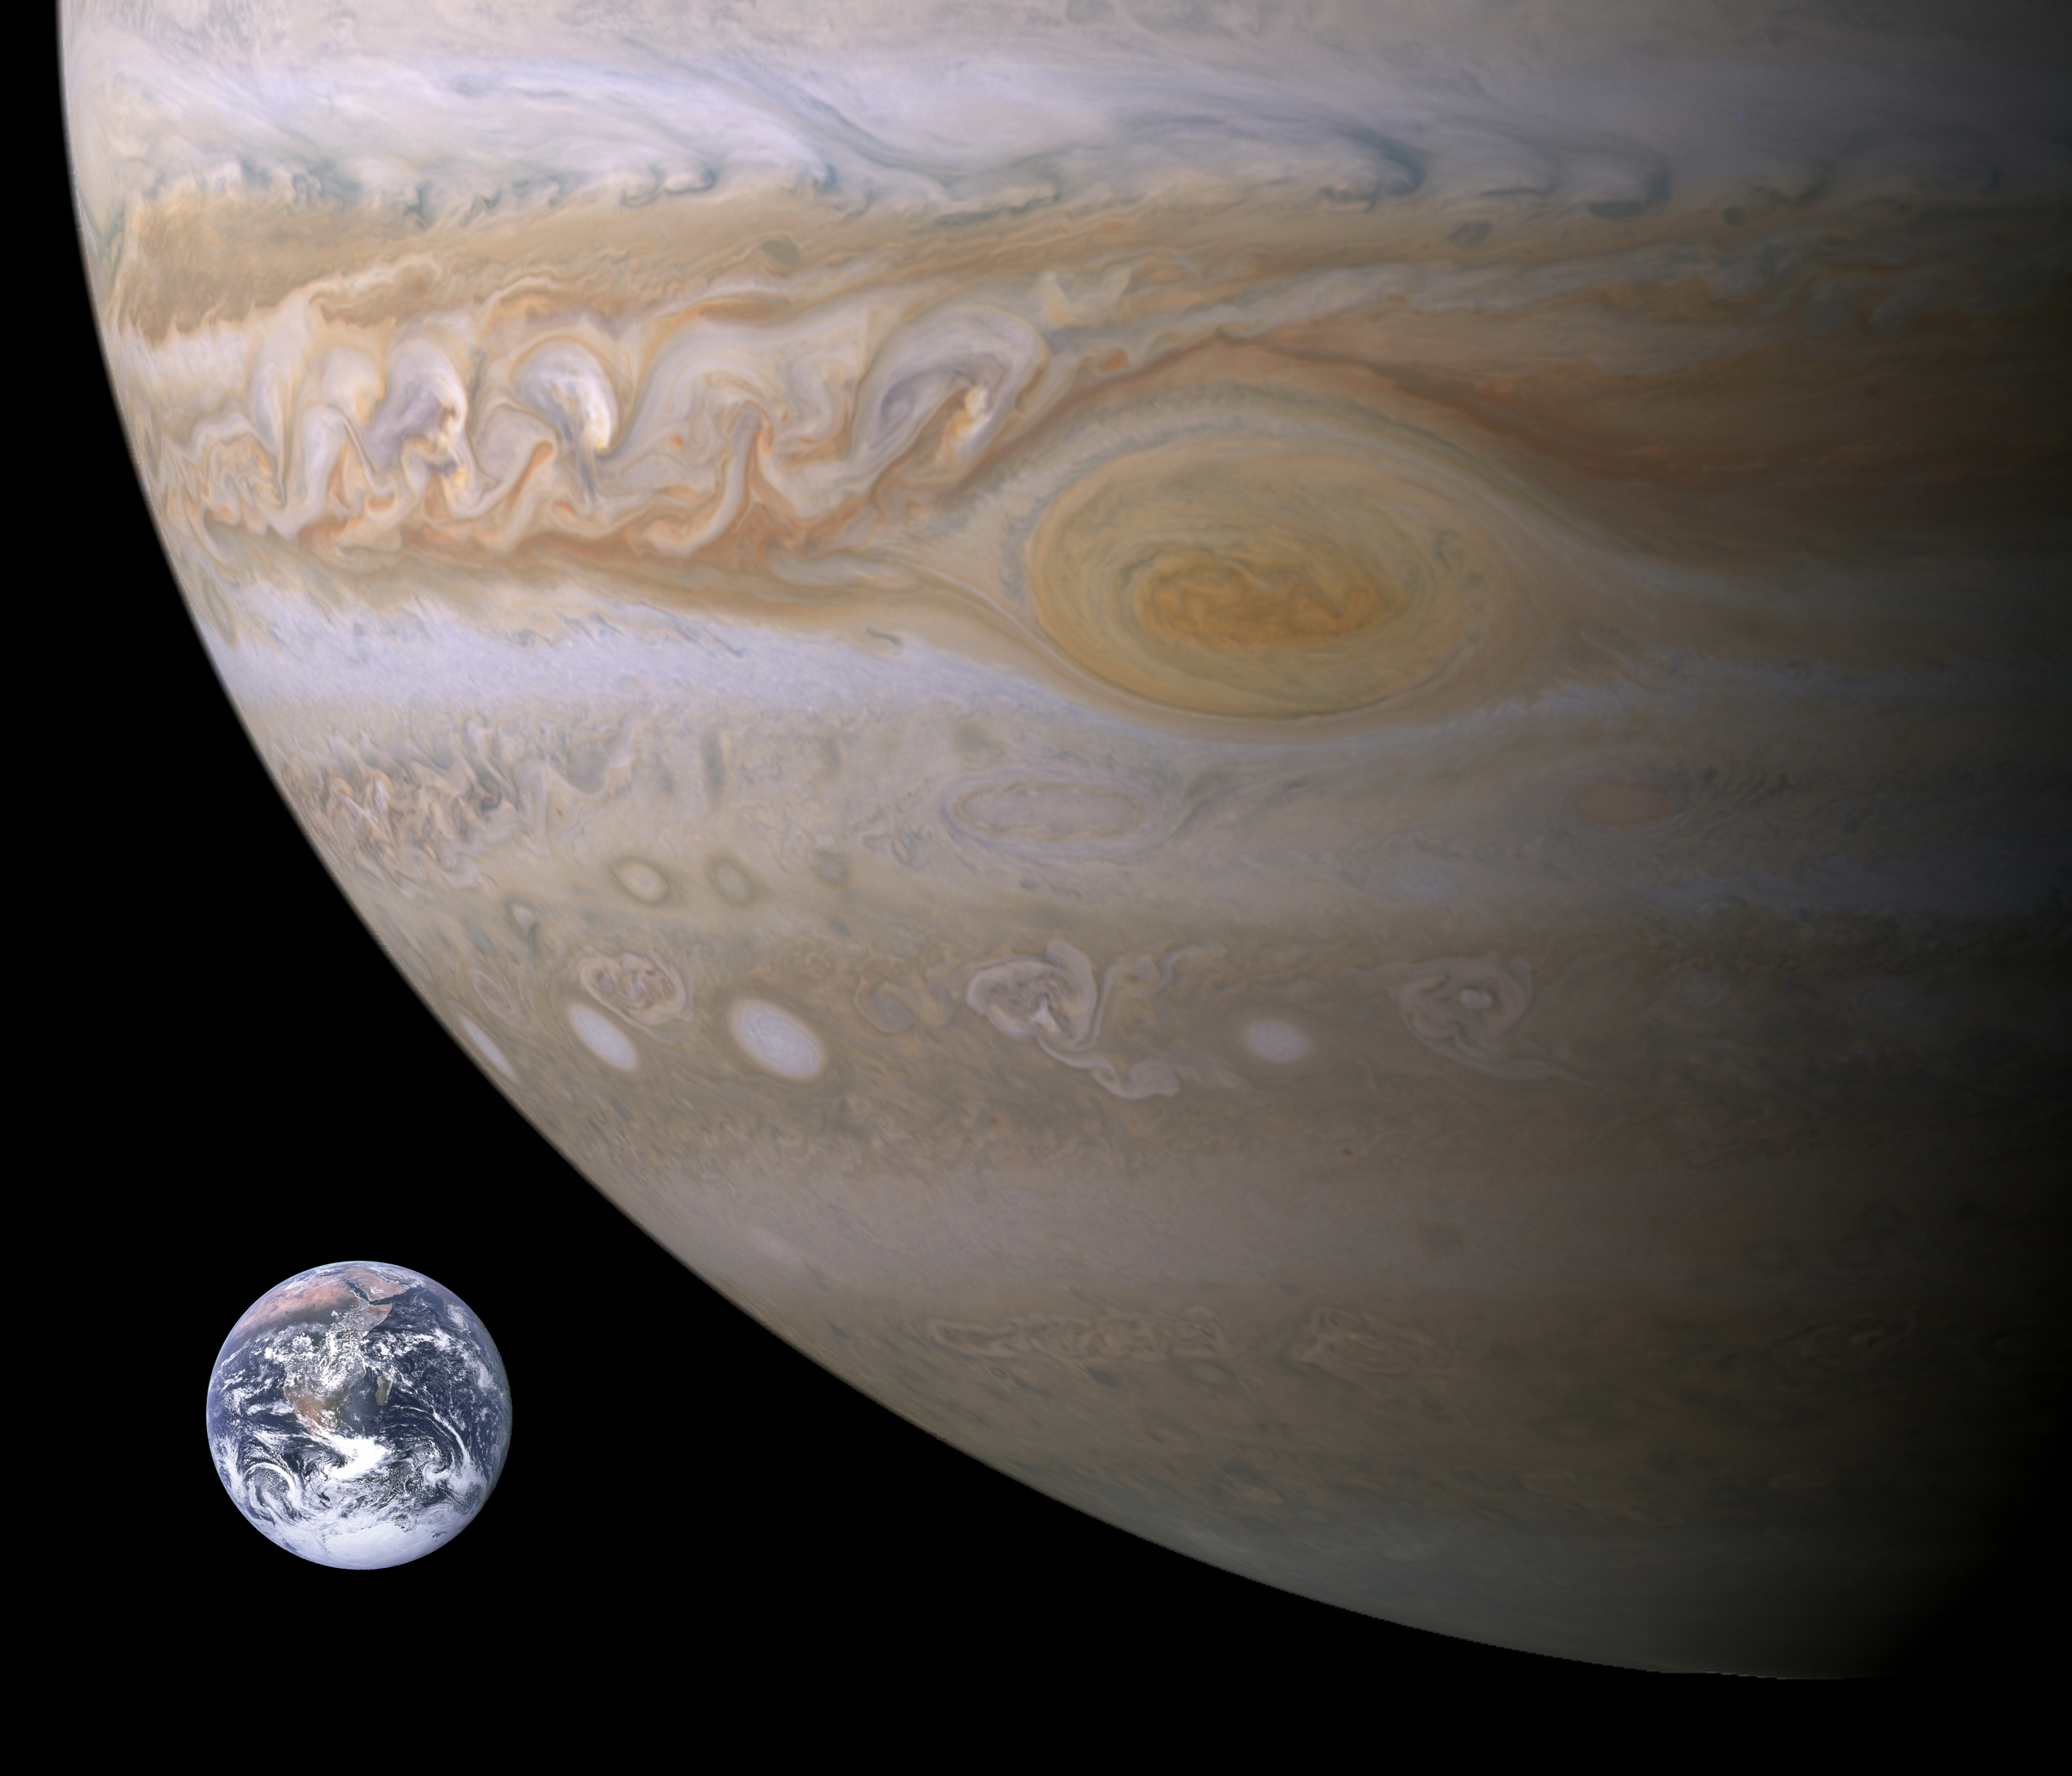 Jupiter,_Earth_size_comparison.jpg